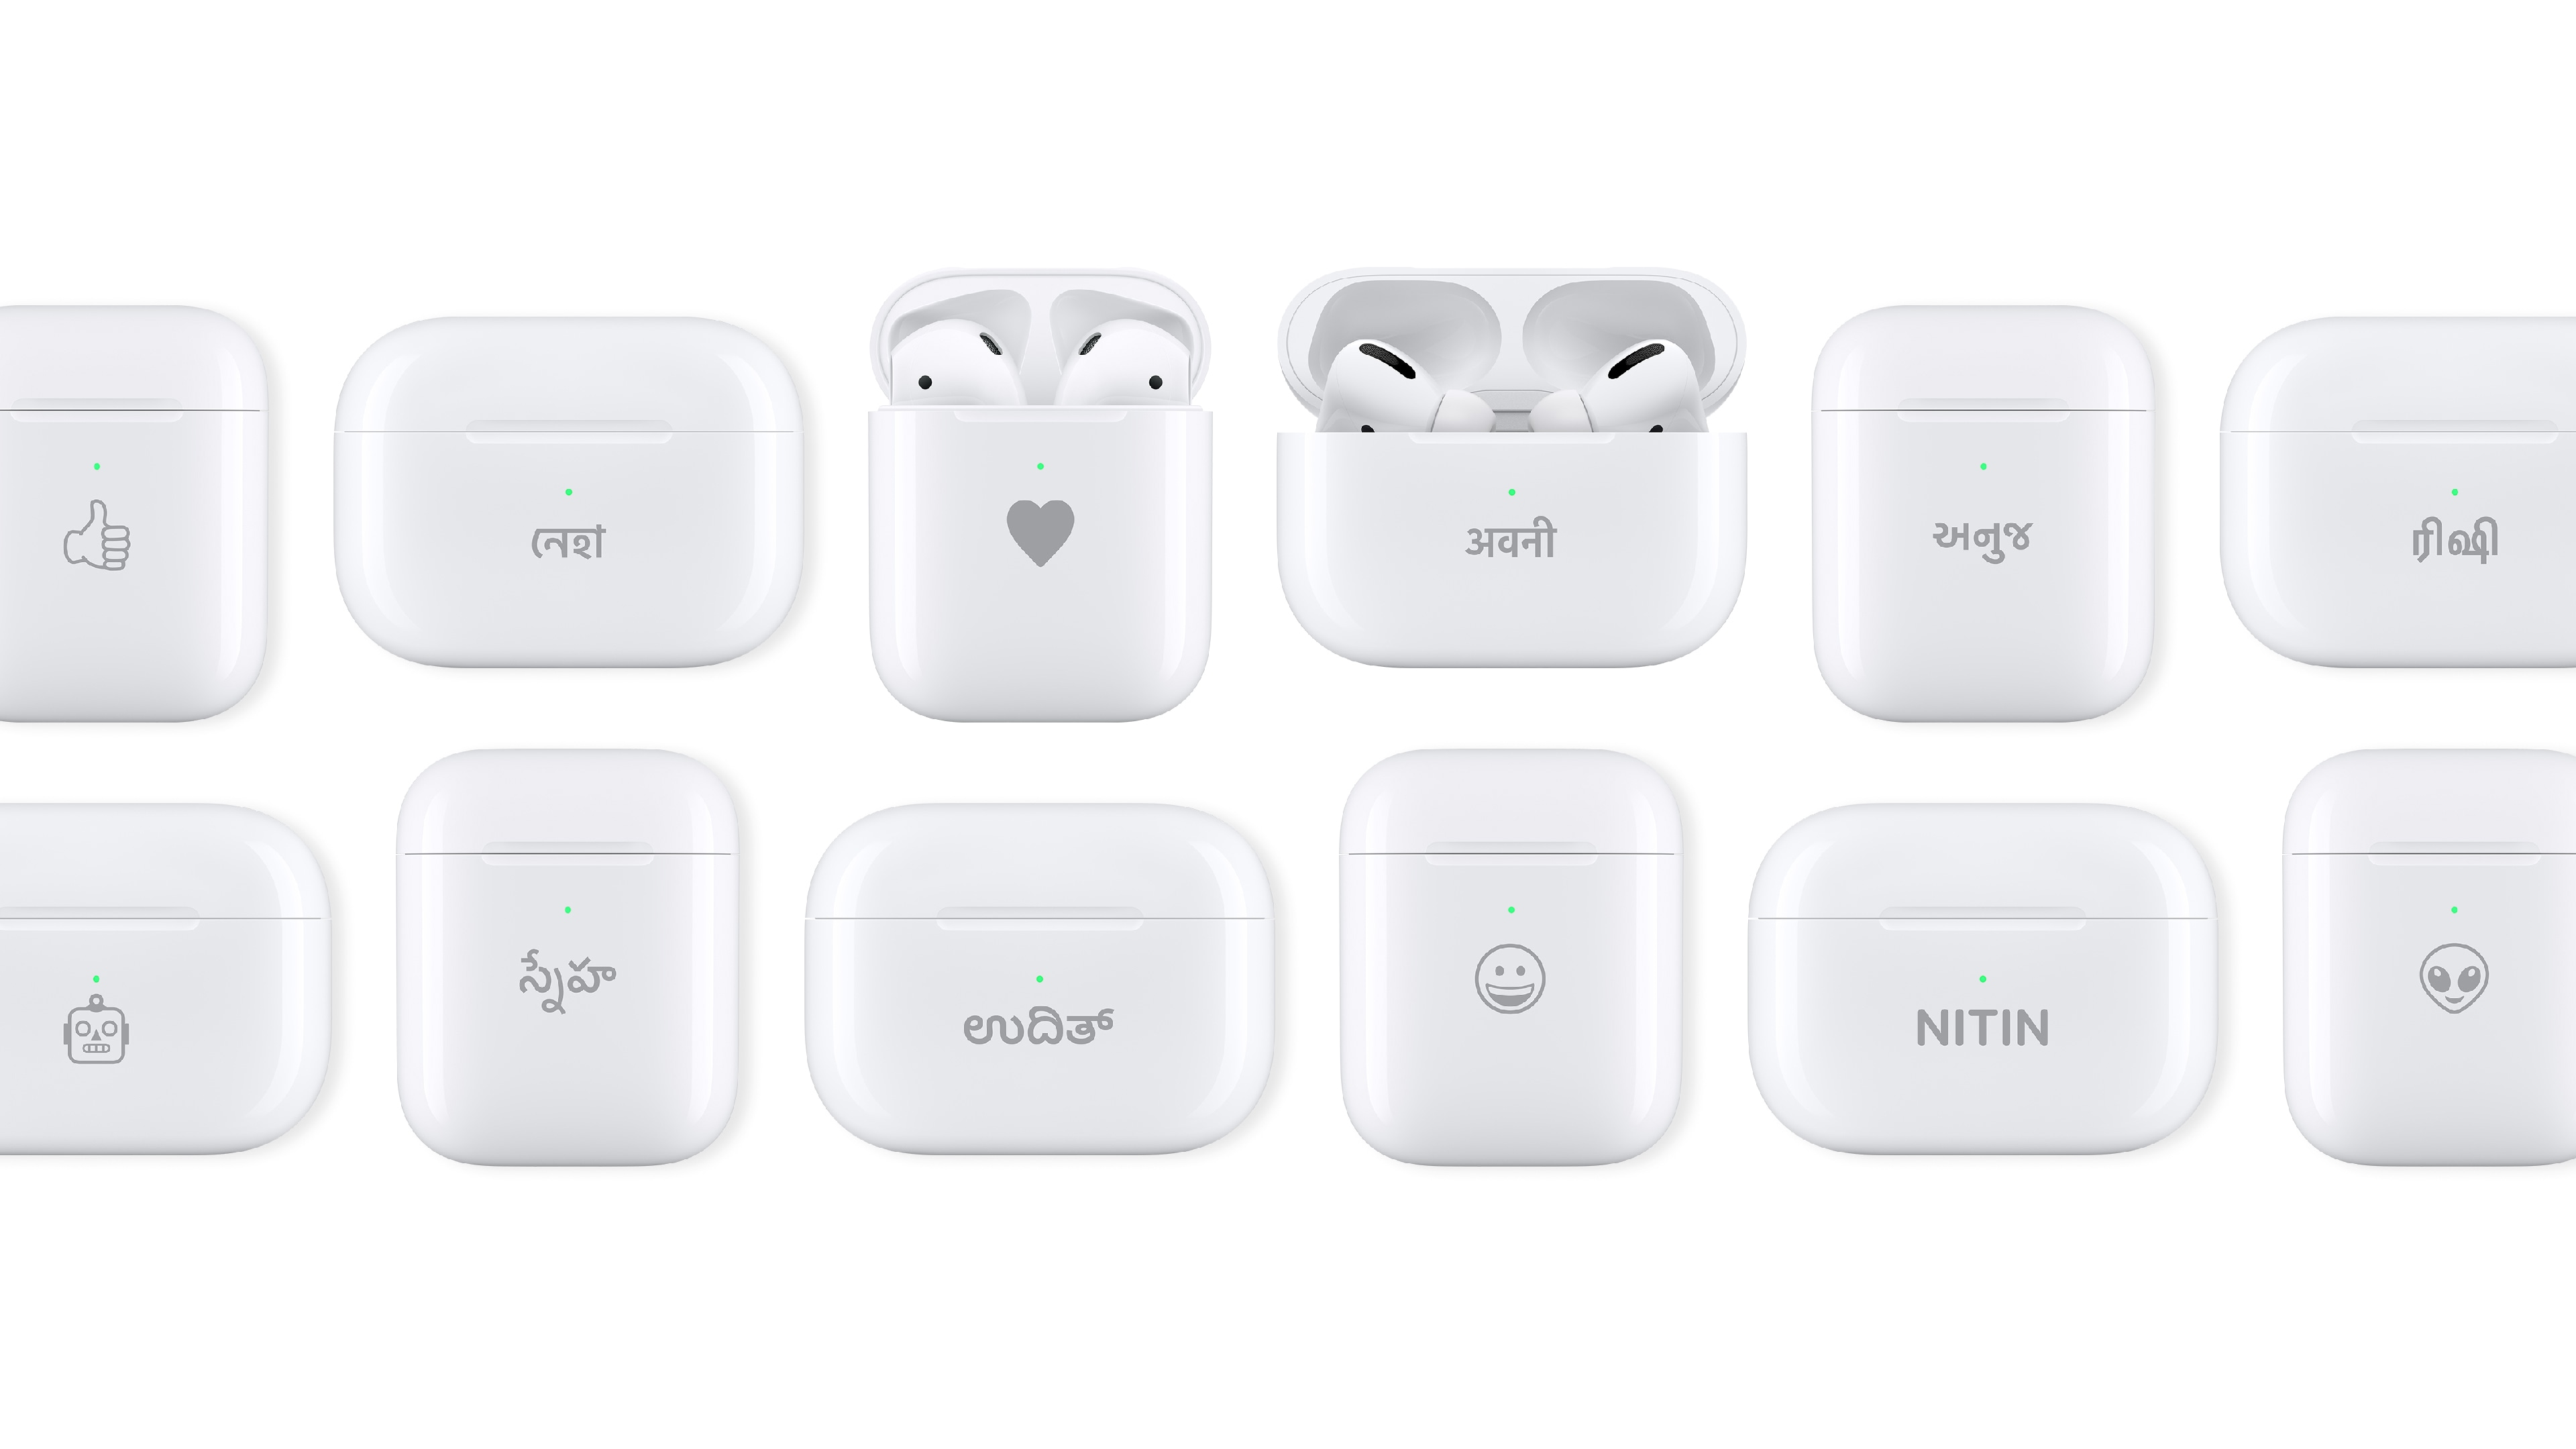 Apple offers personalised engraving on certain products.